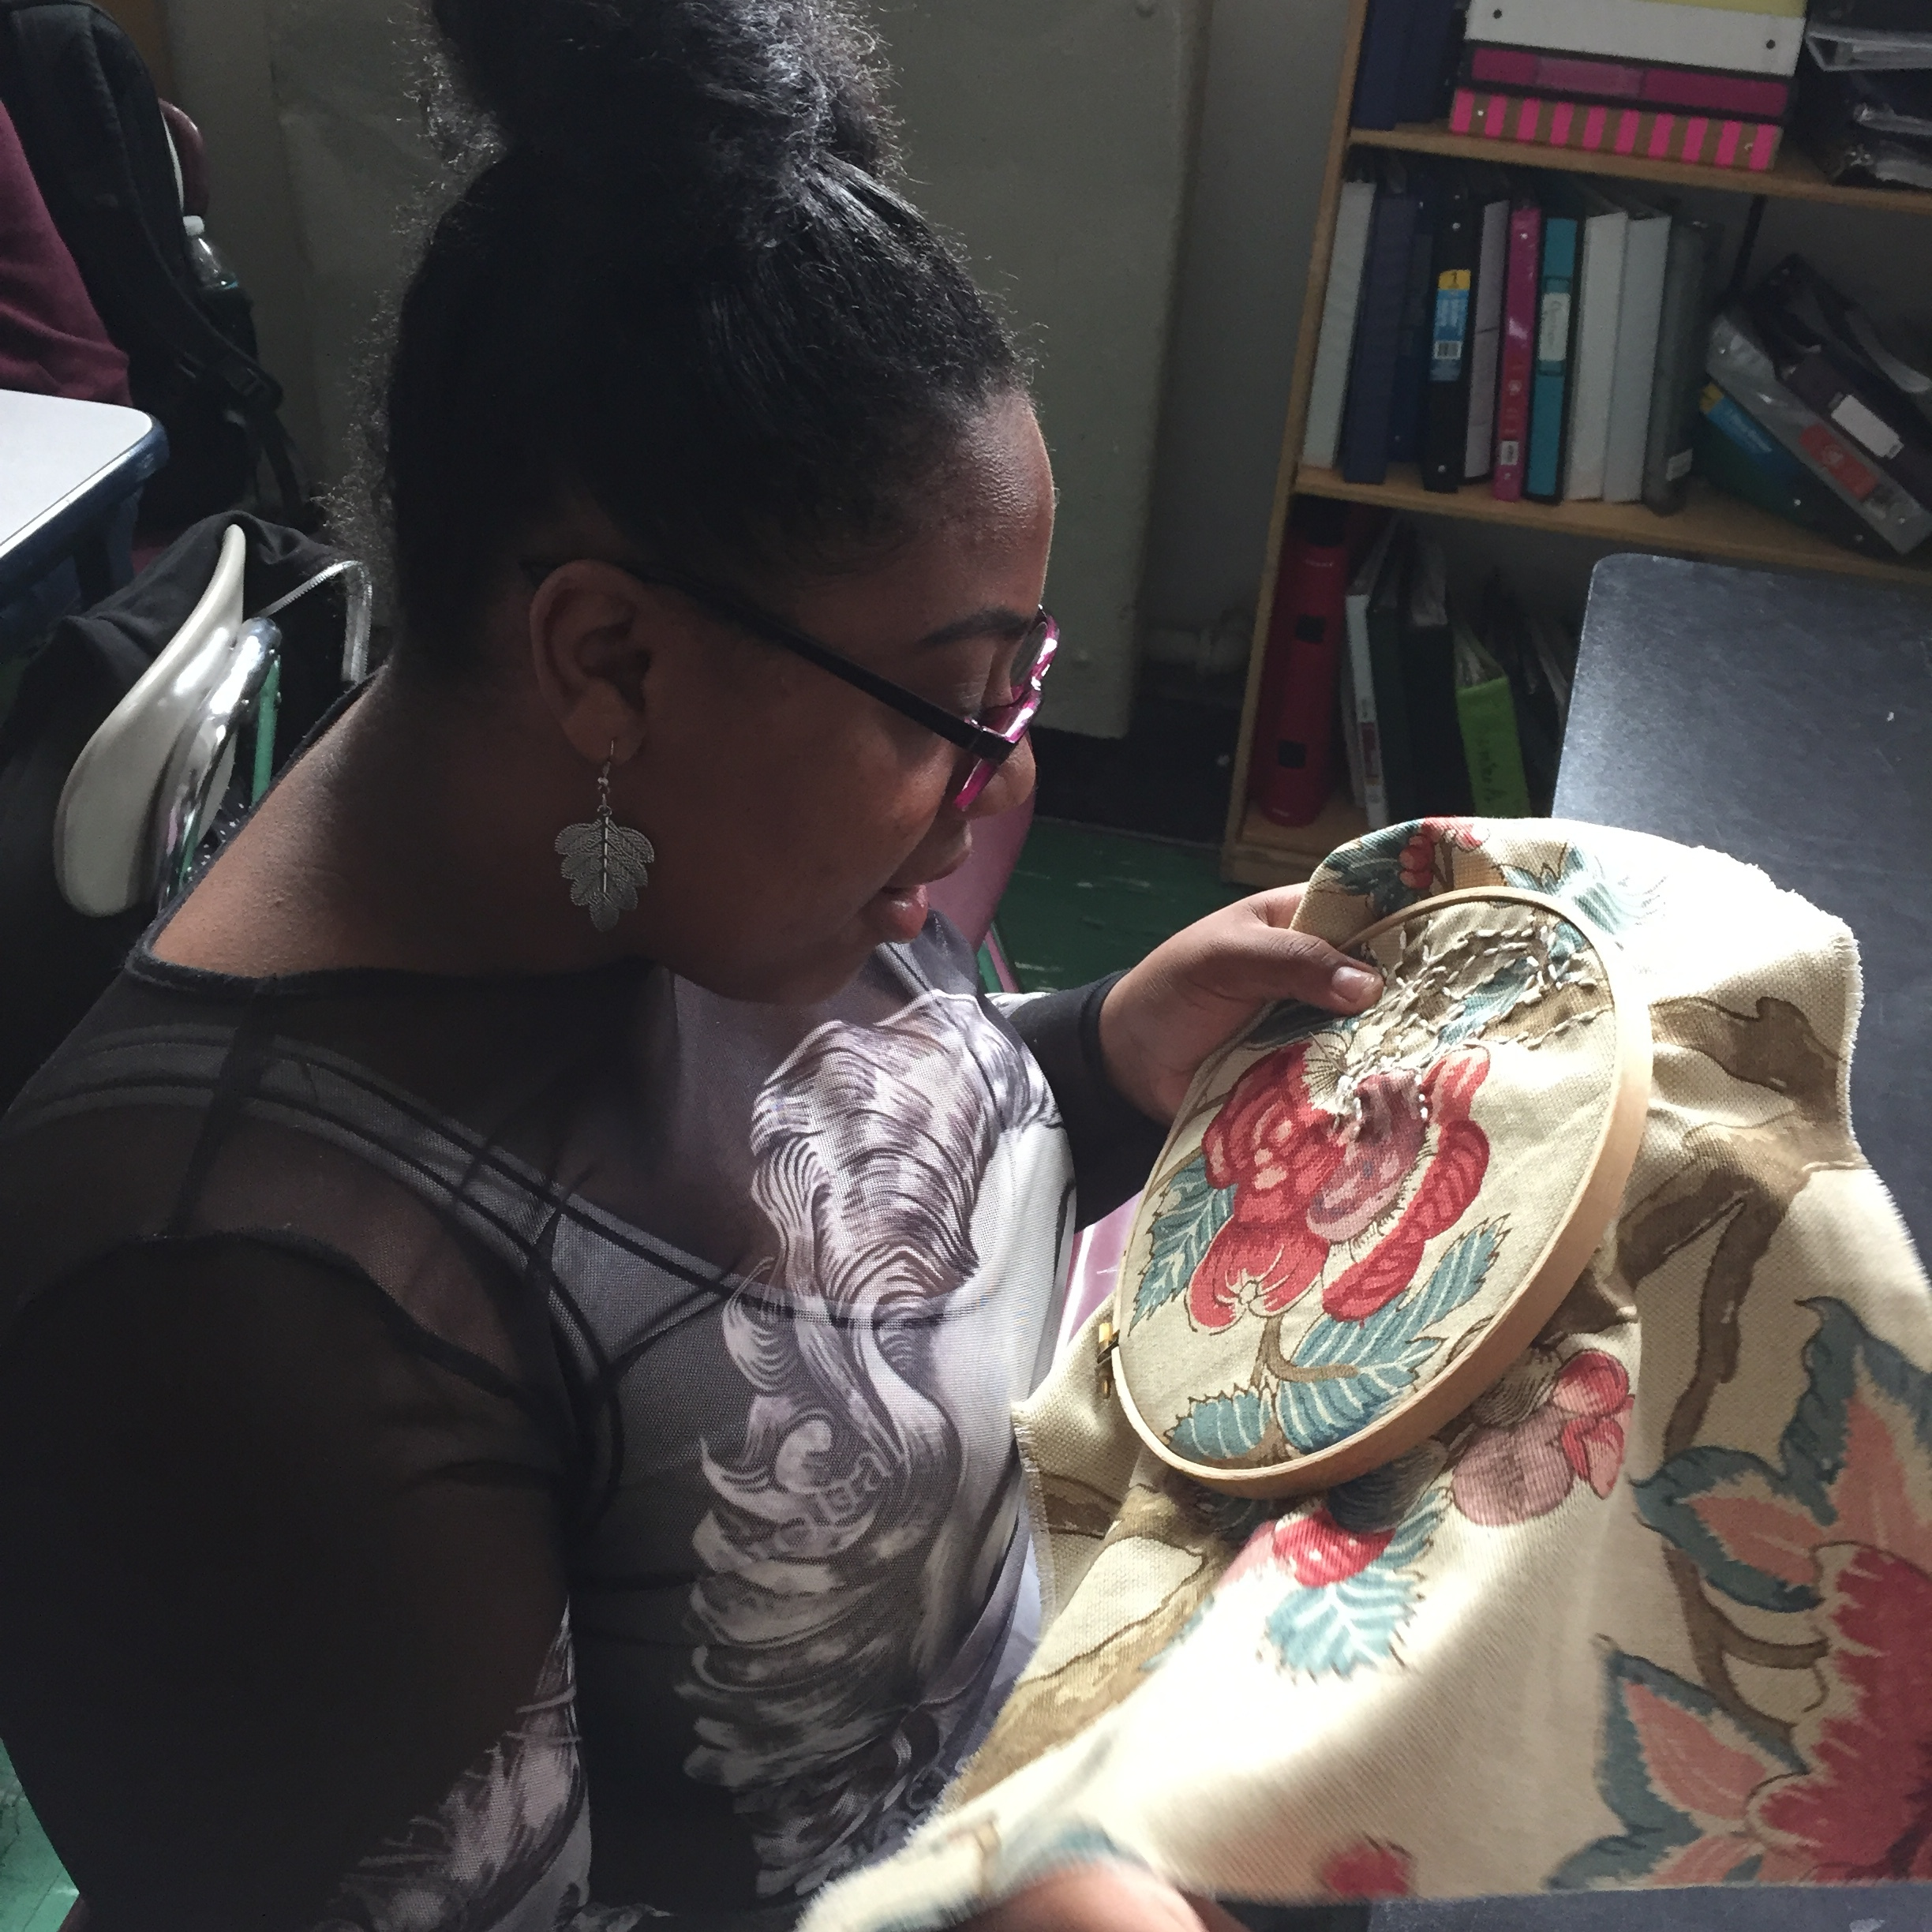 A student embroidering.